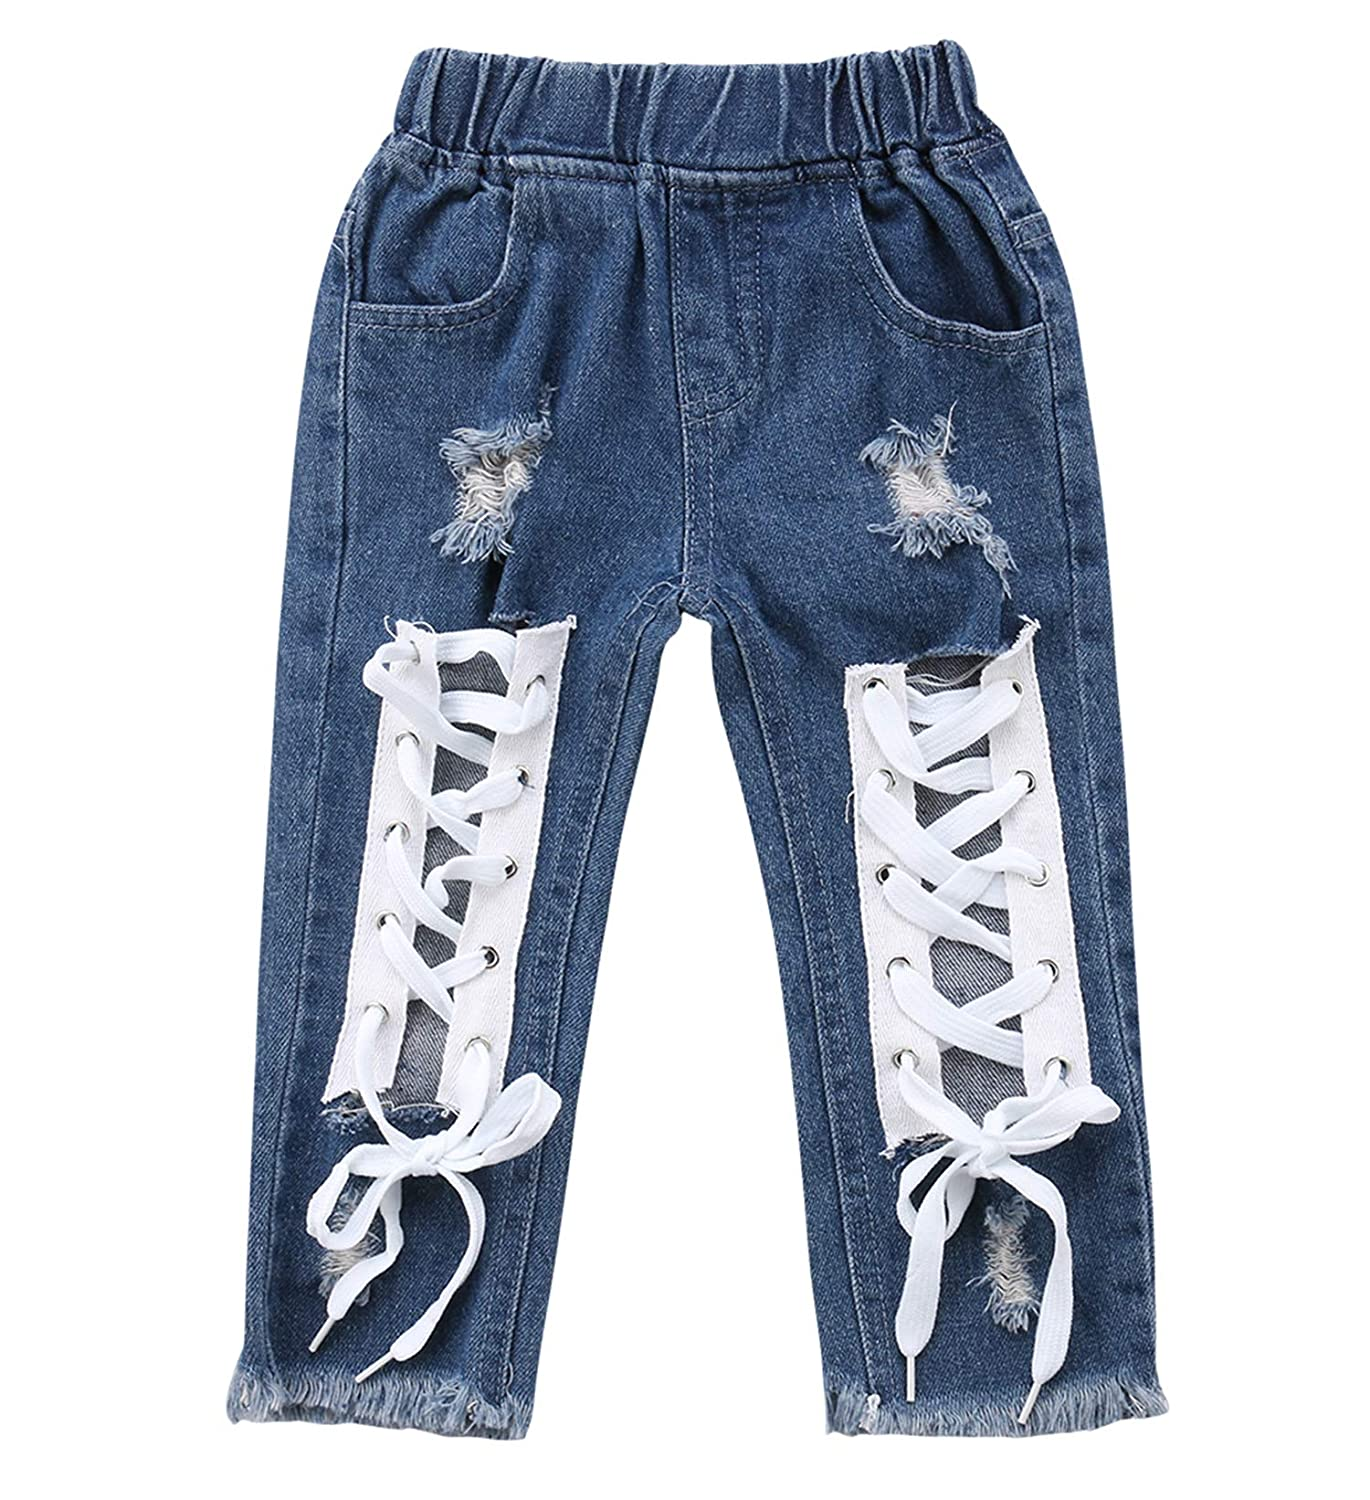 Kids Summer Pants Girls Cotton Woven Flare Wide Legs Ruffled Baggy Bottom Jeans